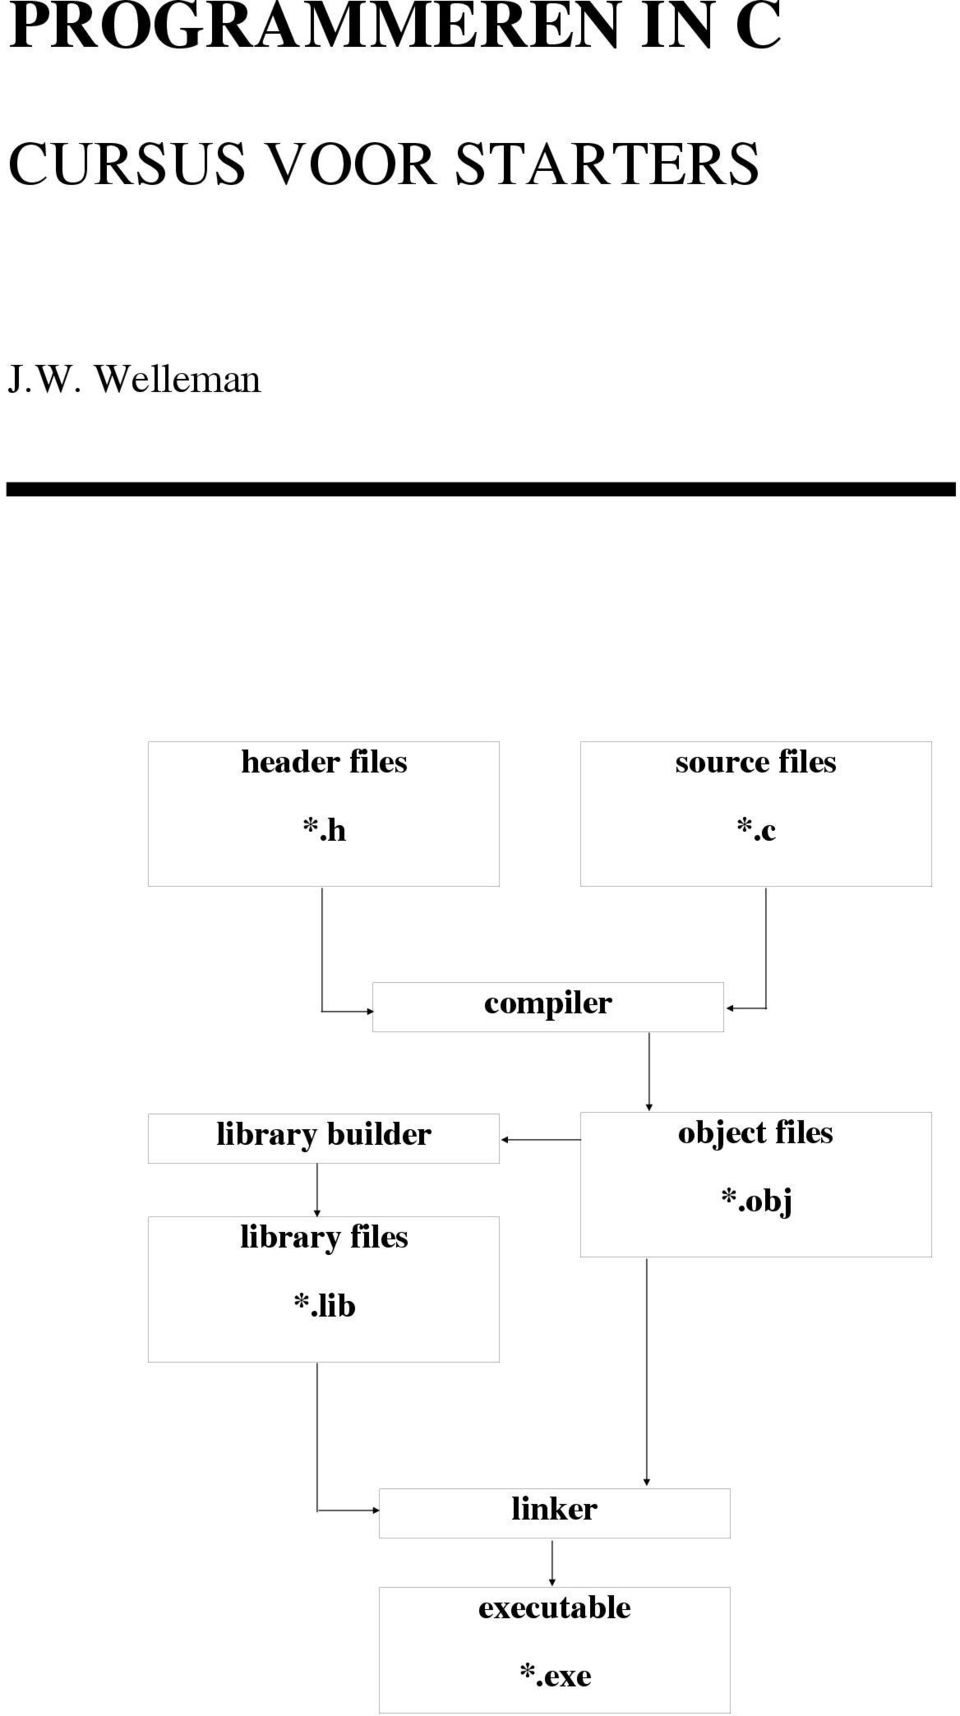 c compiler library builder library files